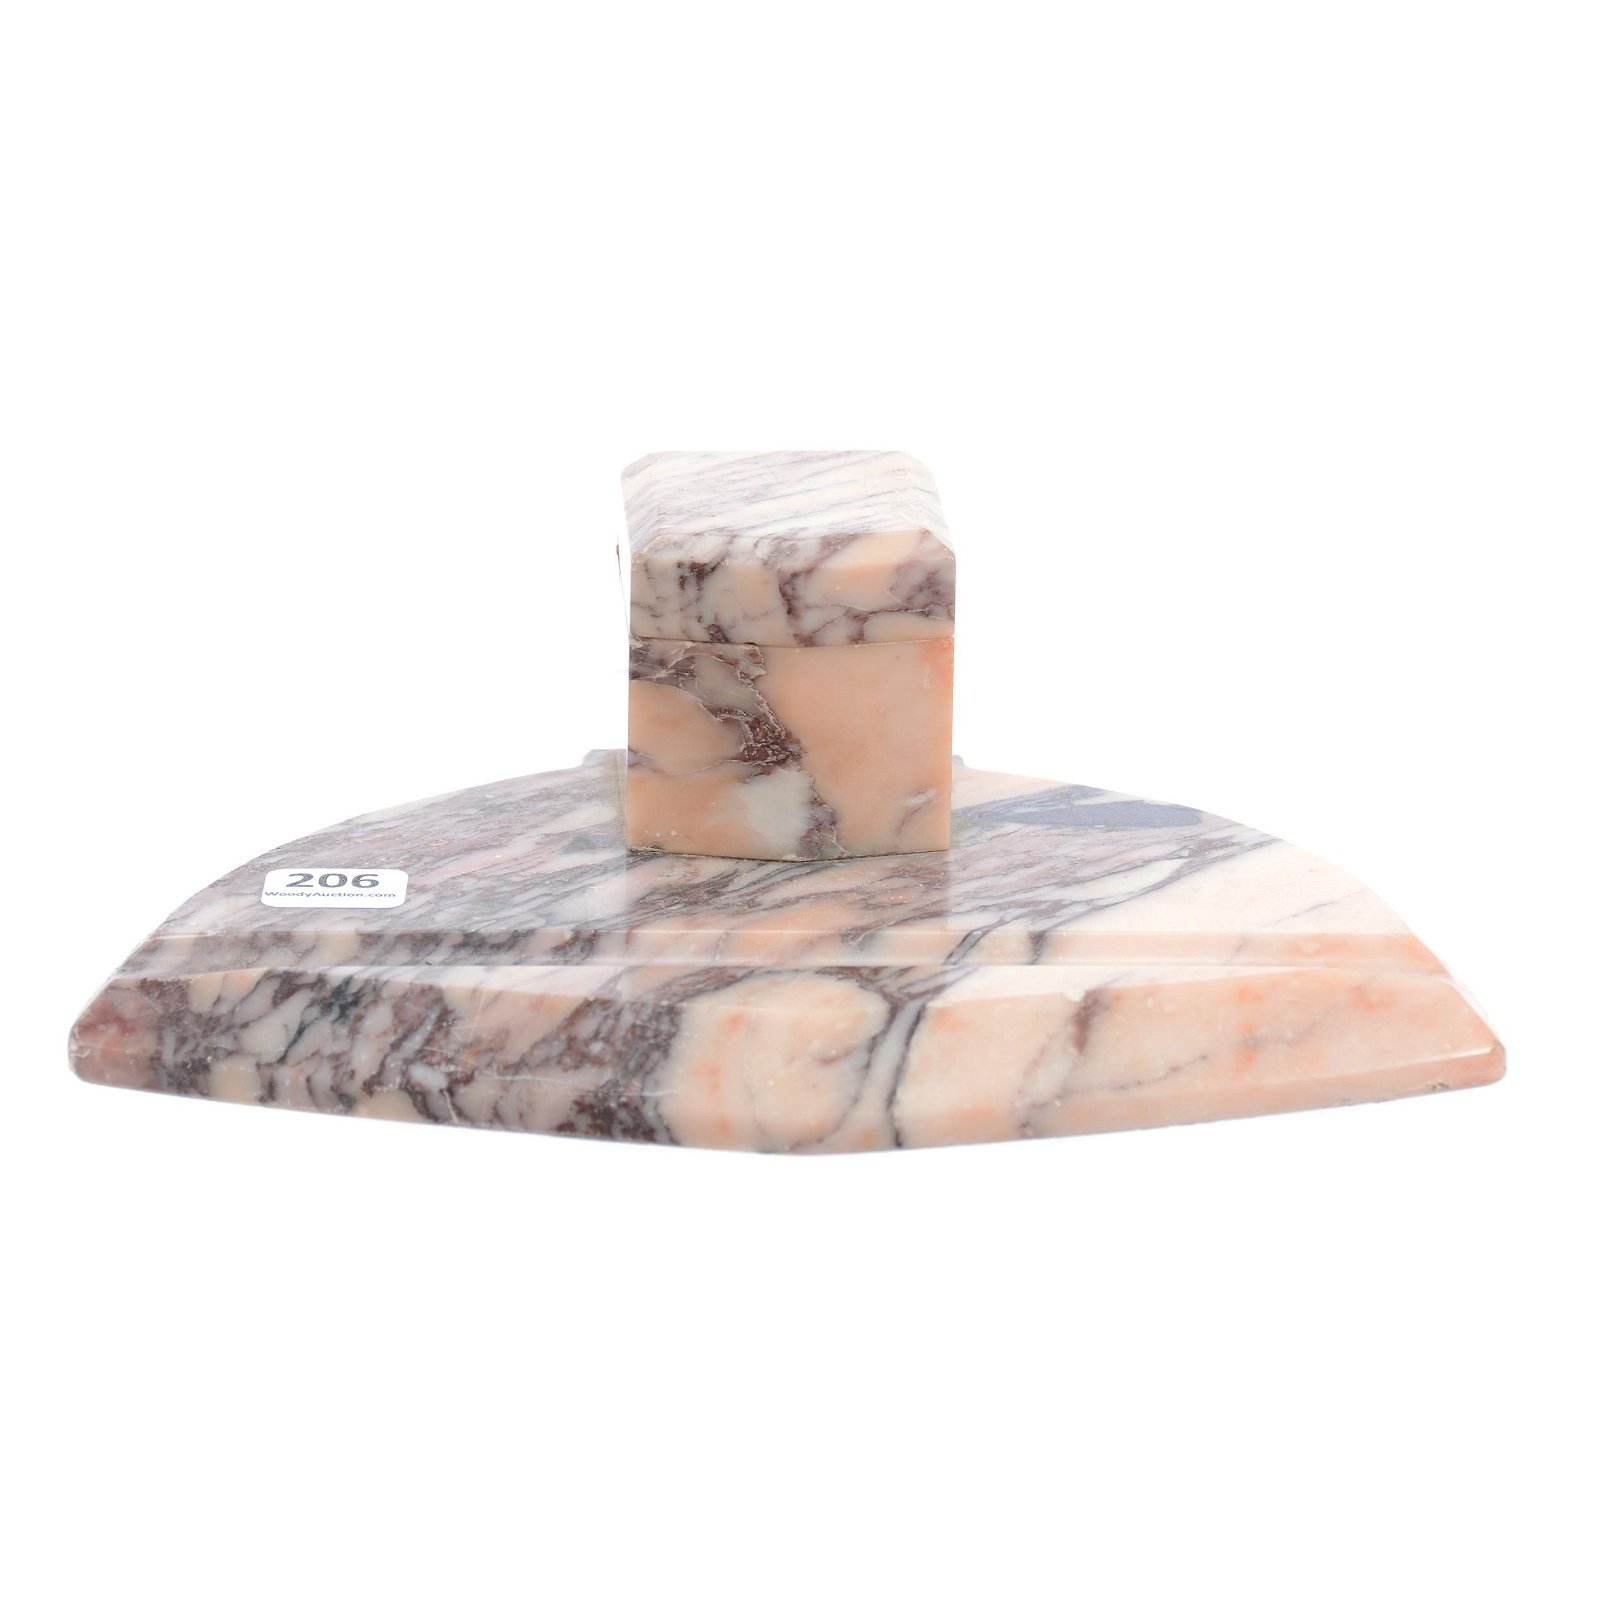 Pink Marble Inkwell With Porcelain Insert